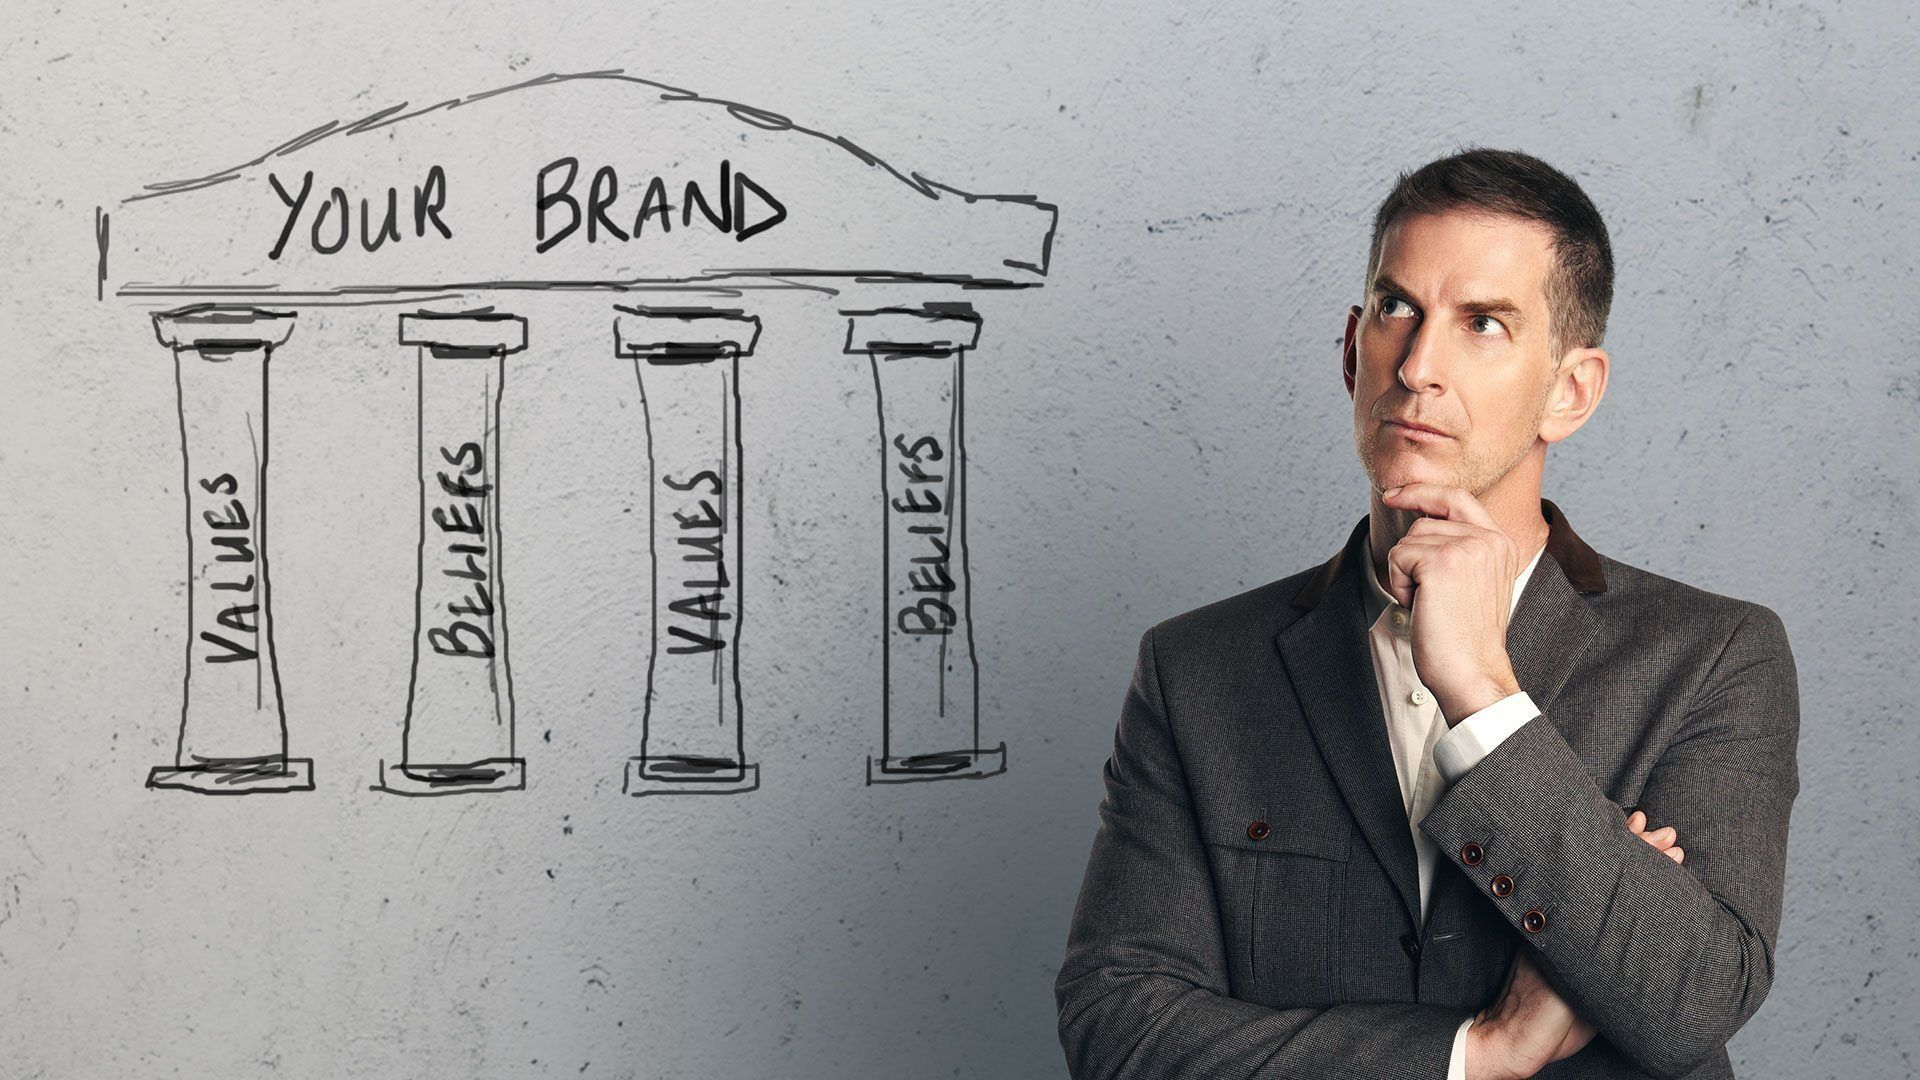 Your Brand Values